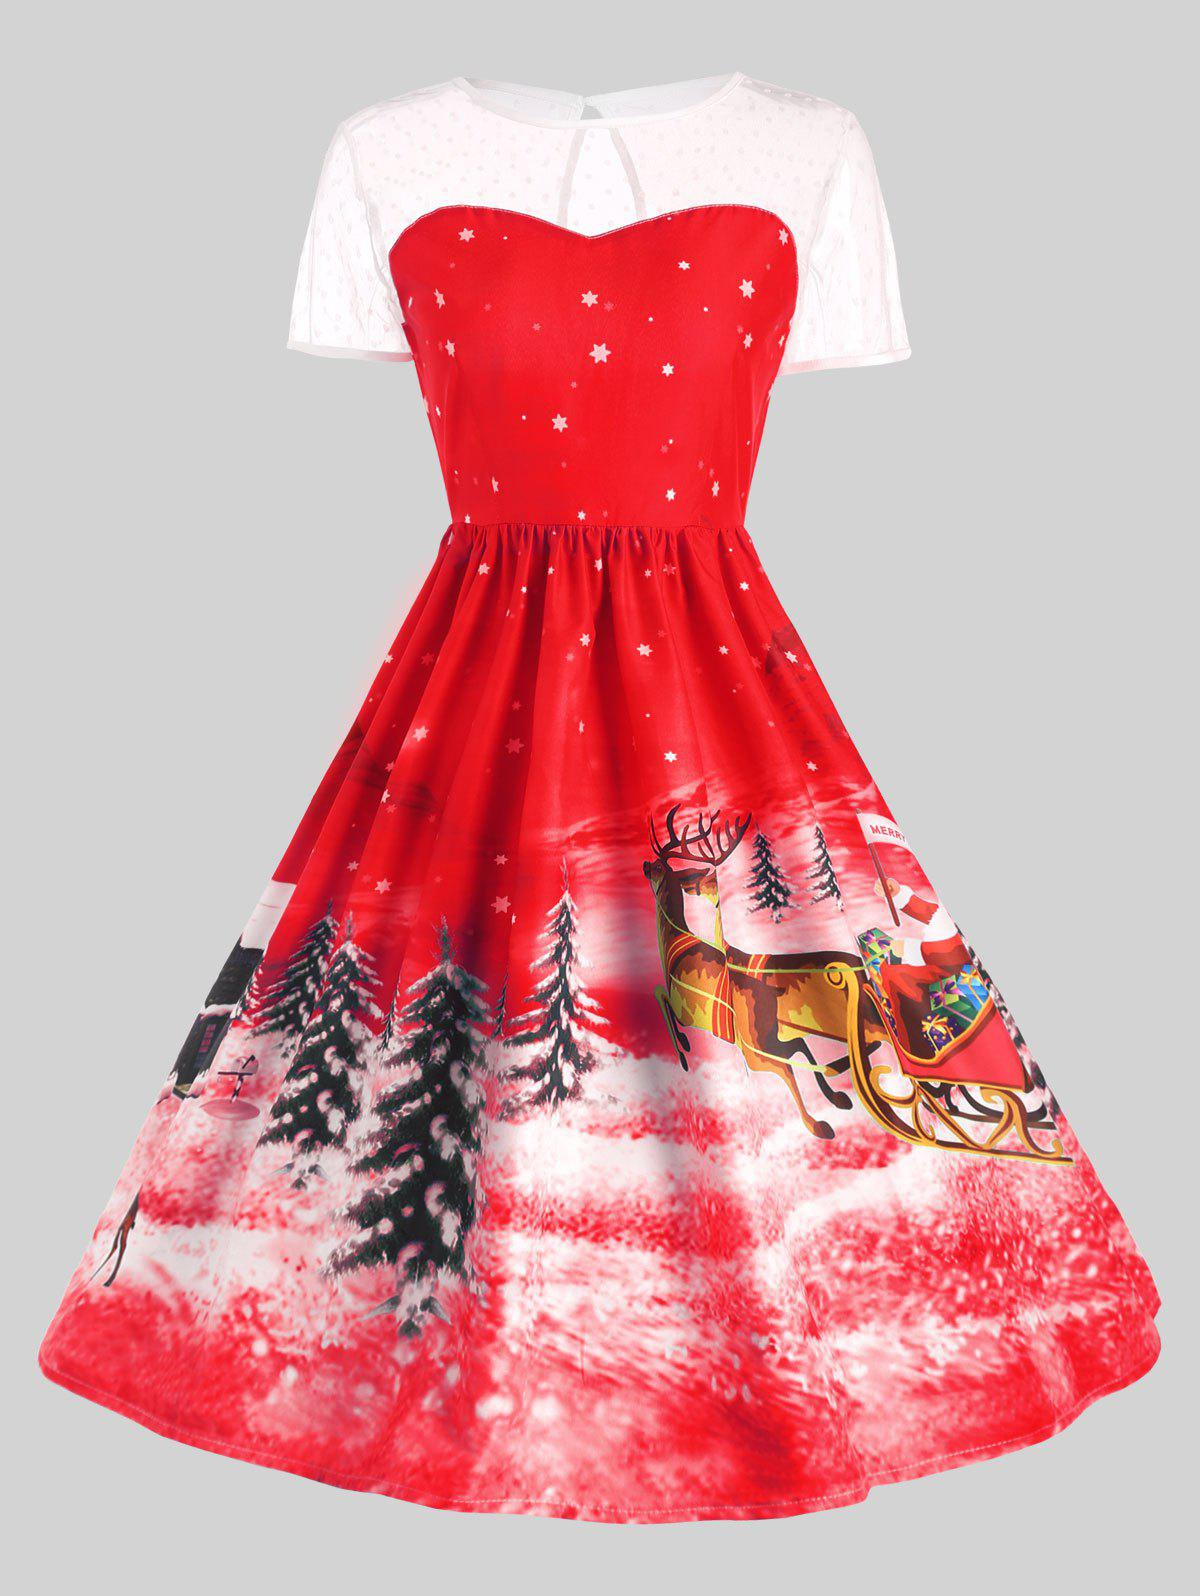 Online Father Christmas Sleigh Party Gown Dress